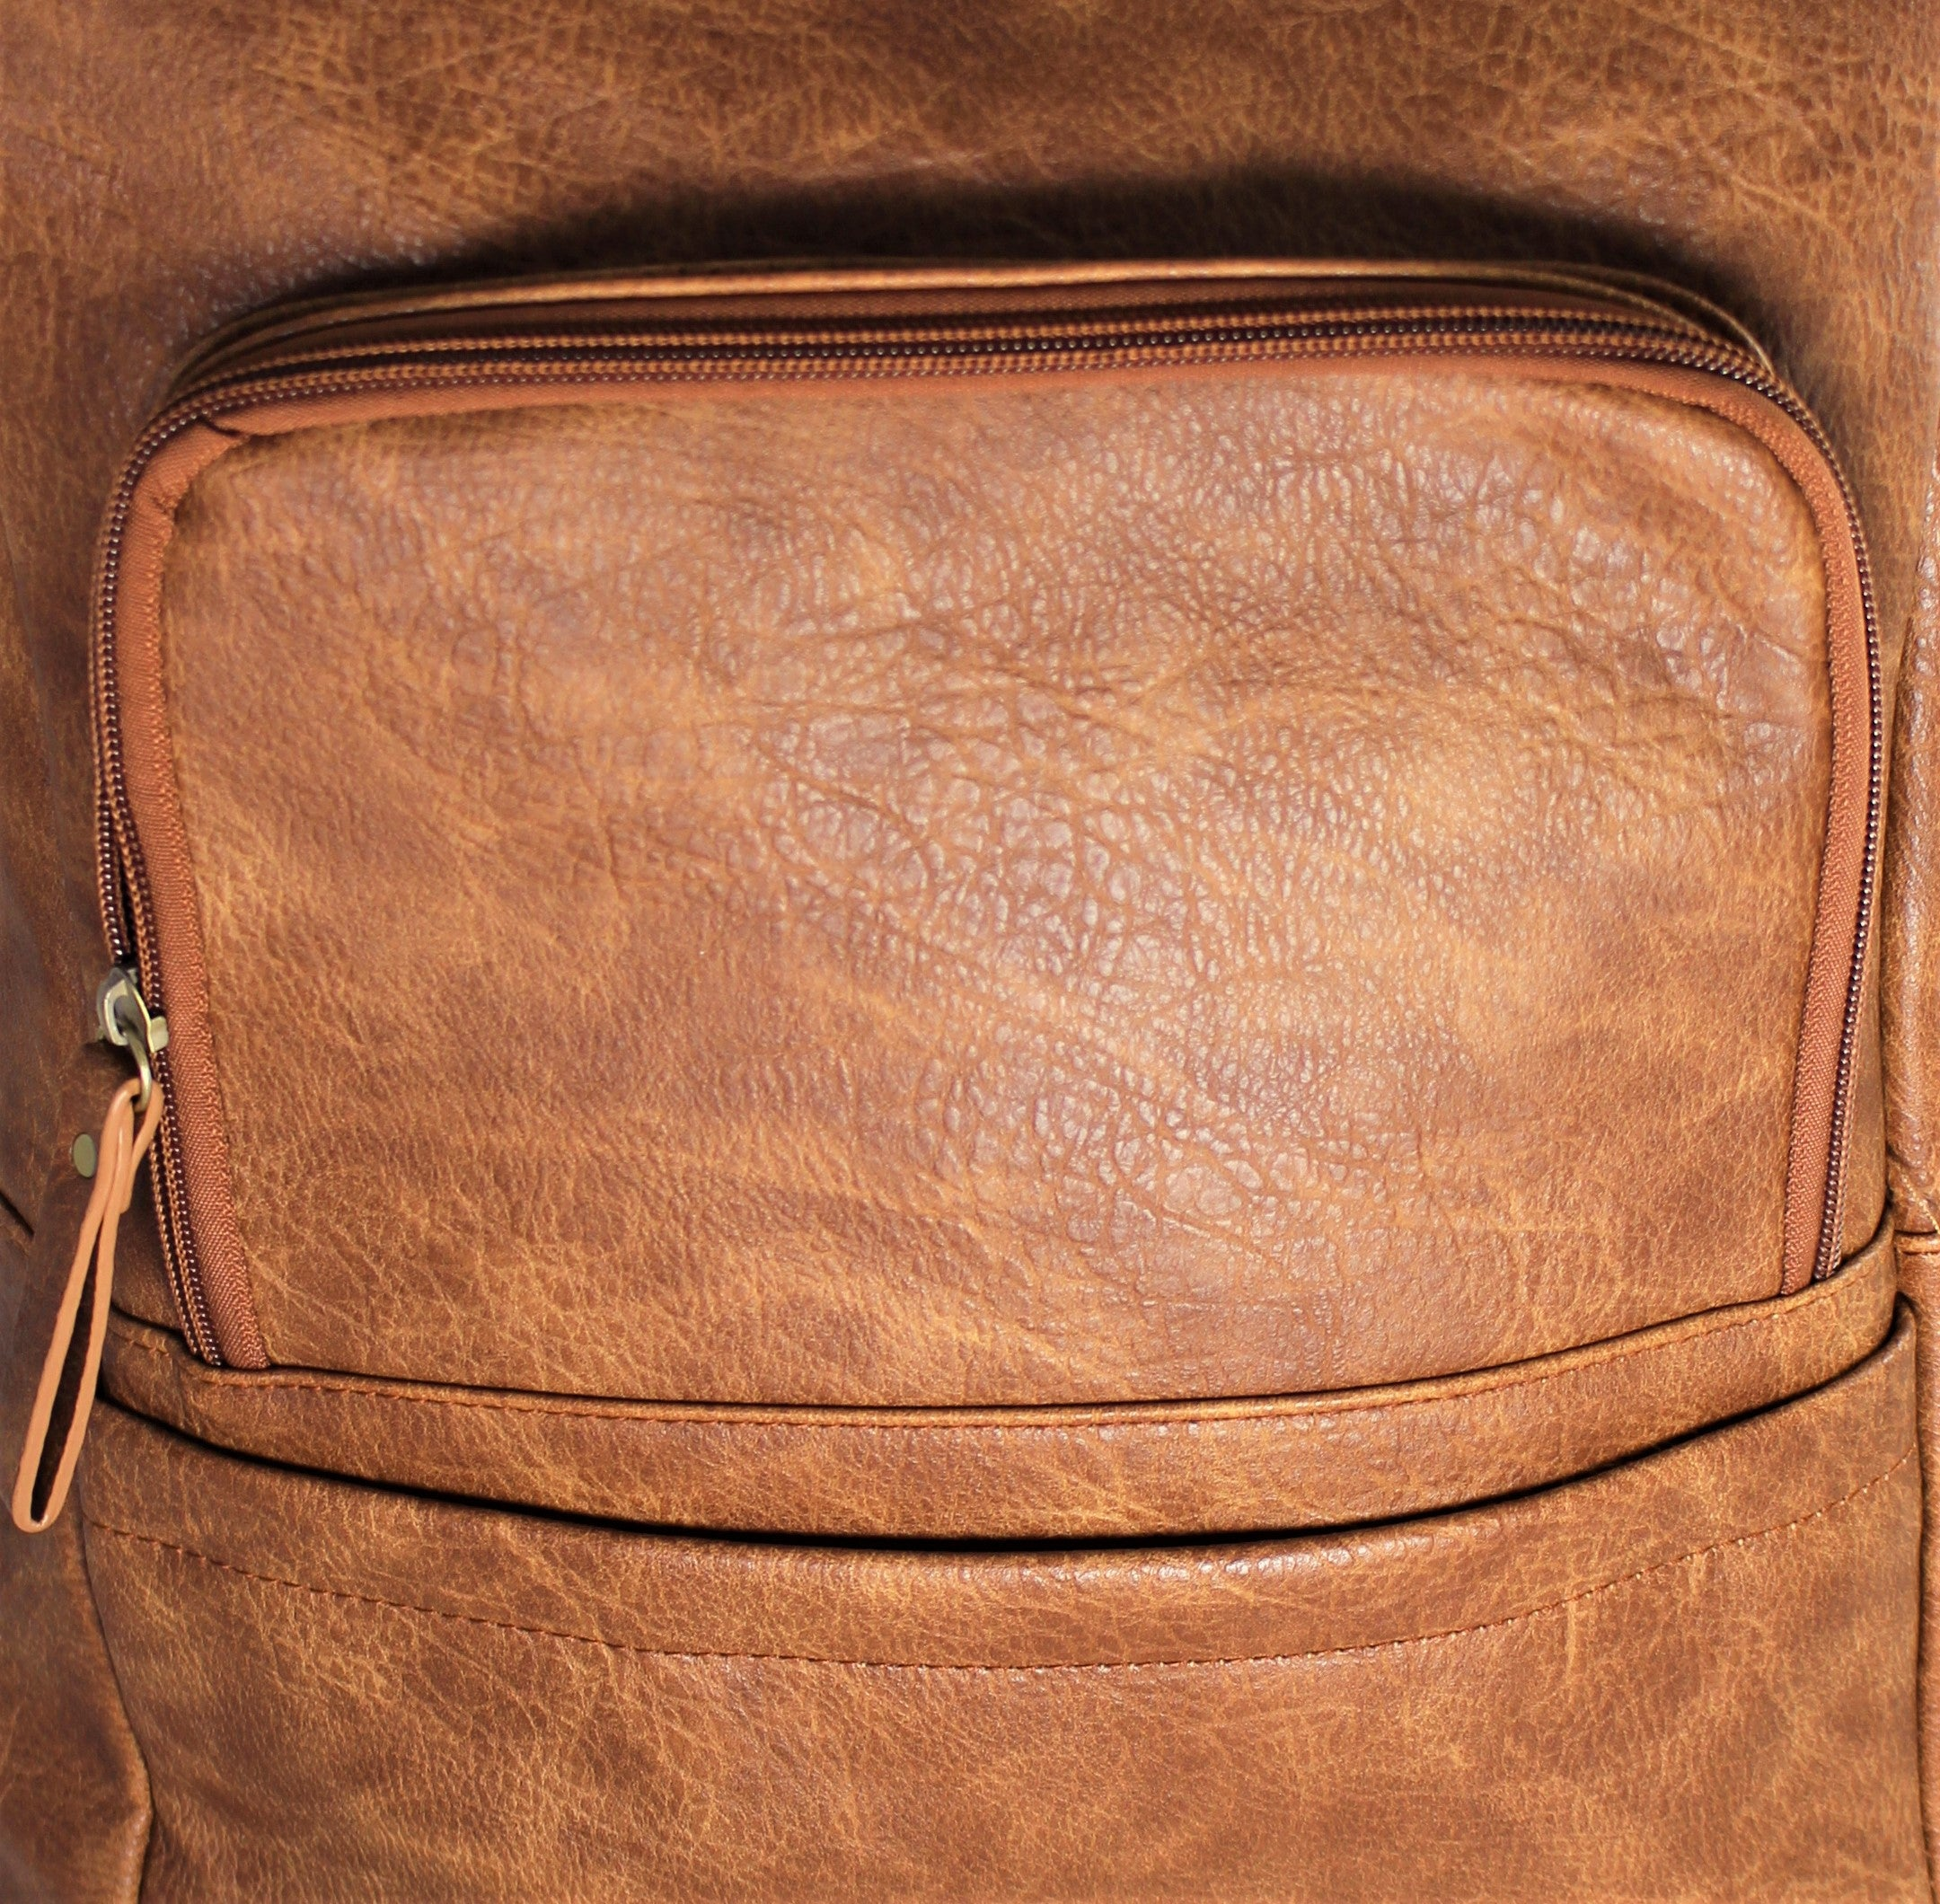 Distressed Faux Leather Textured Backpack - Bridges to Borders